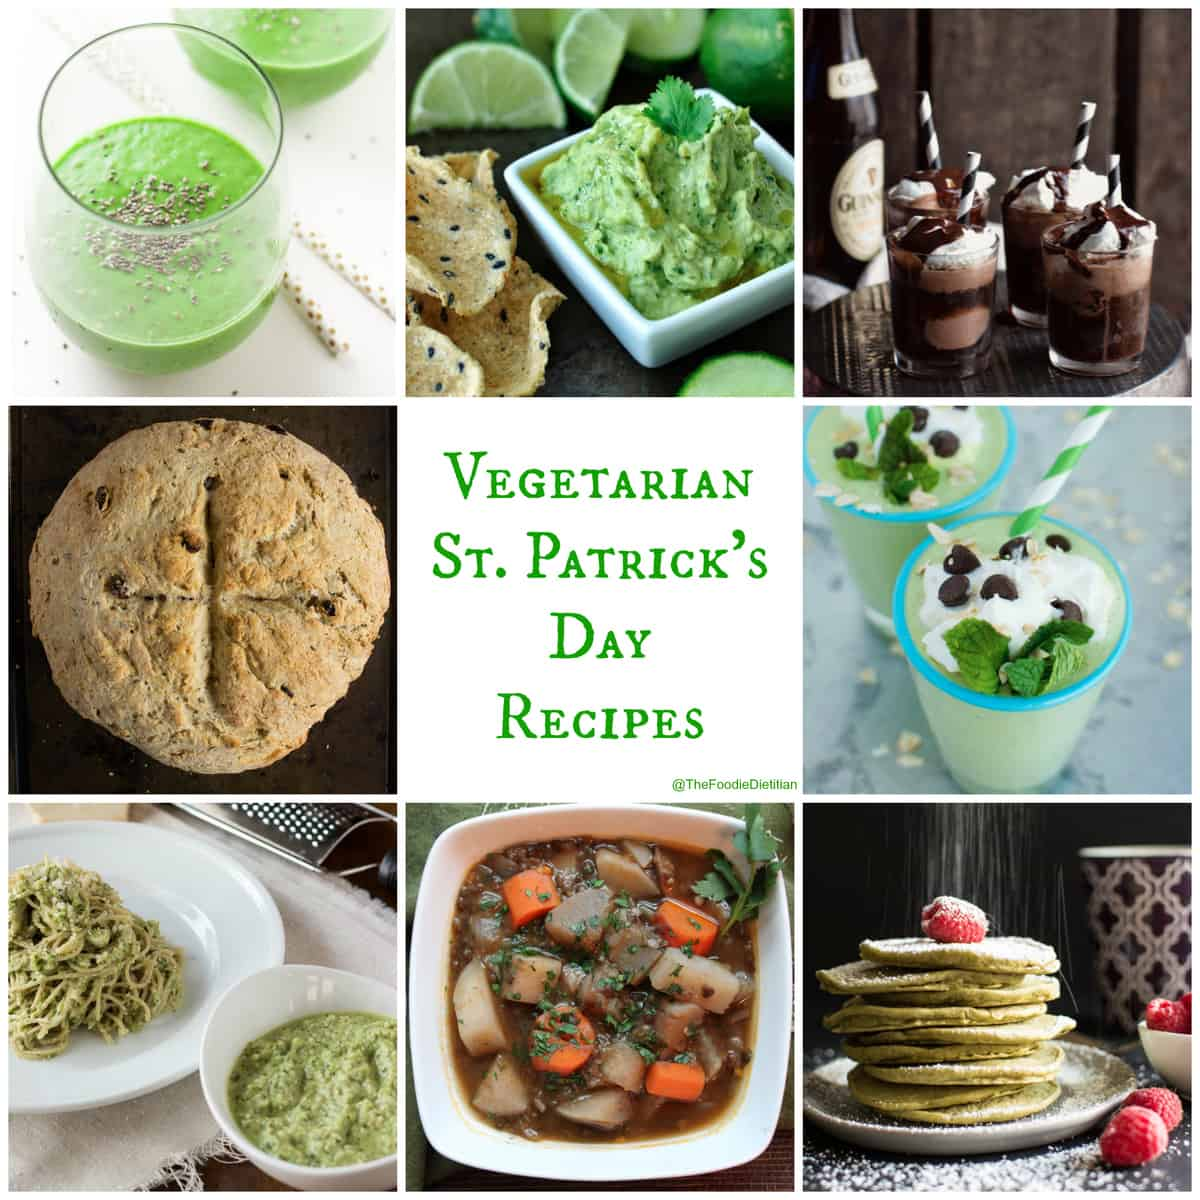 A round-up of my favorite vegetarian St. Patrick's Day recipes...from Irish to green and everything in between! @TheFoodieDietitian